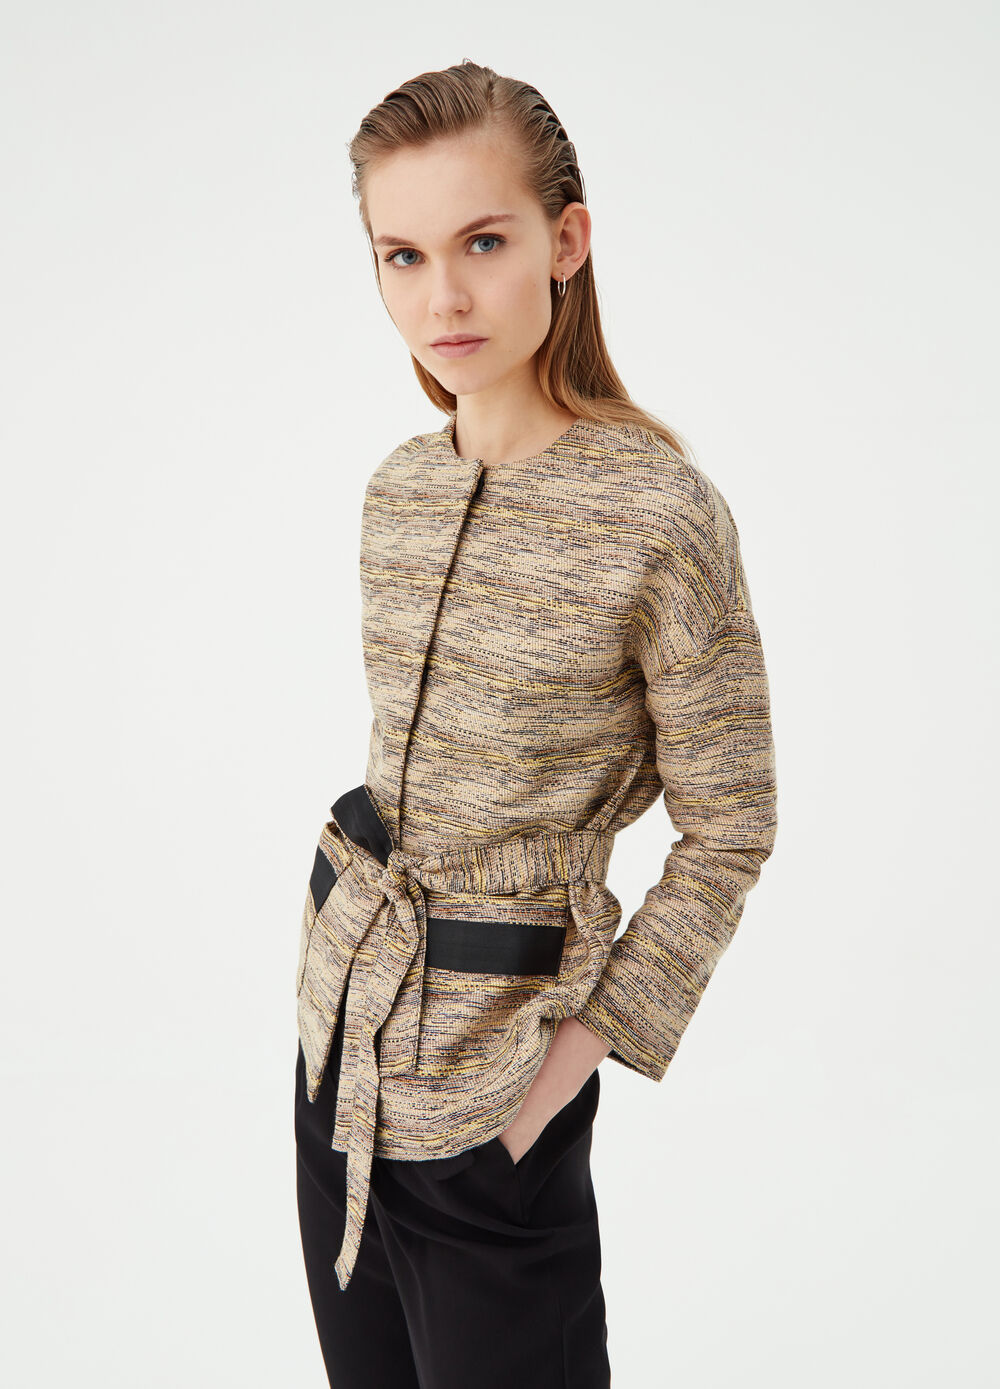 Jacquard jacket with kimono sleeves